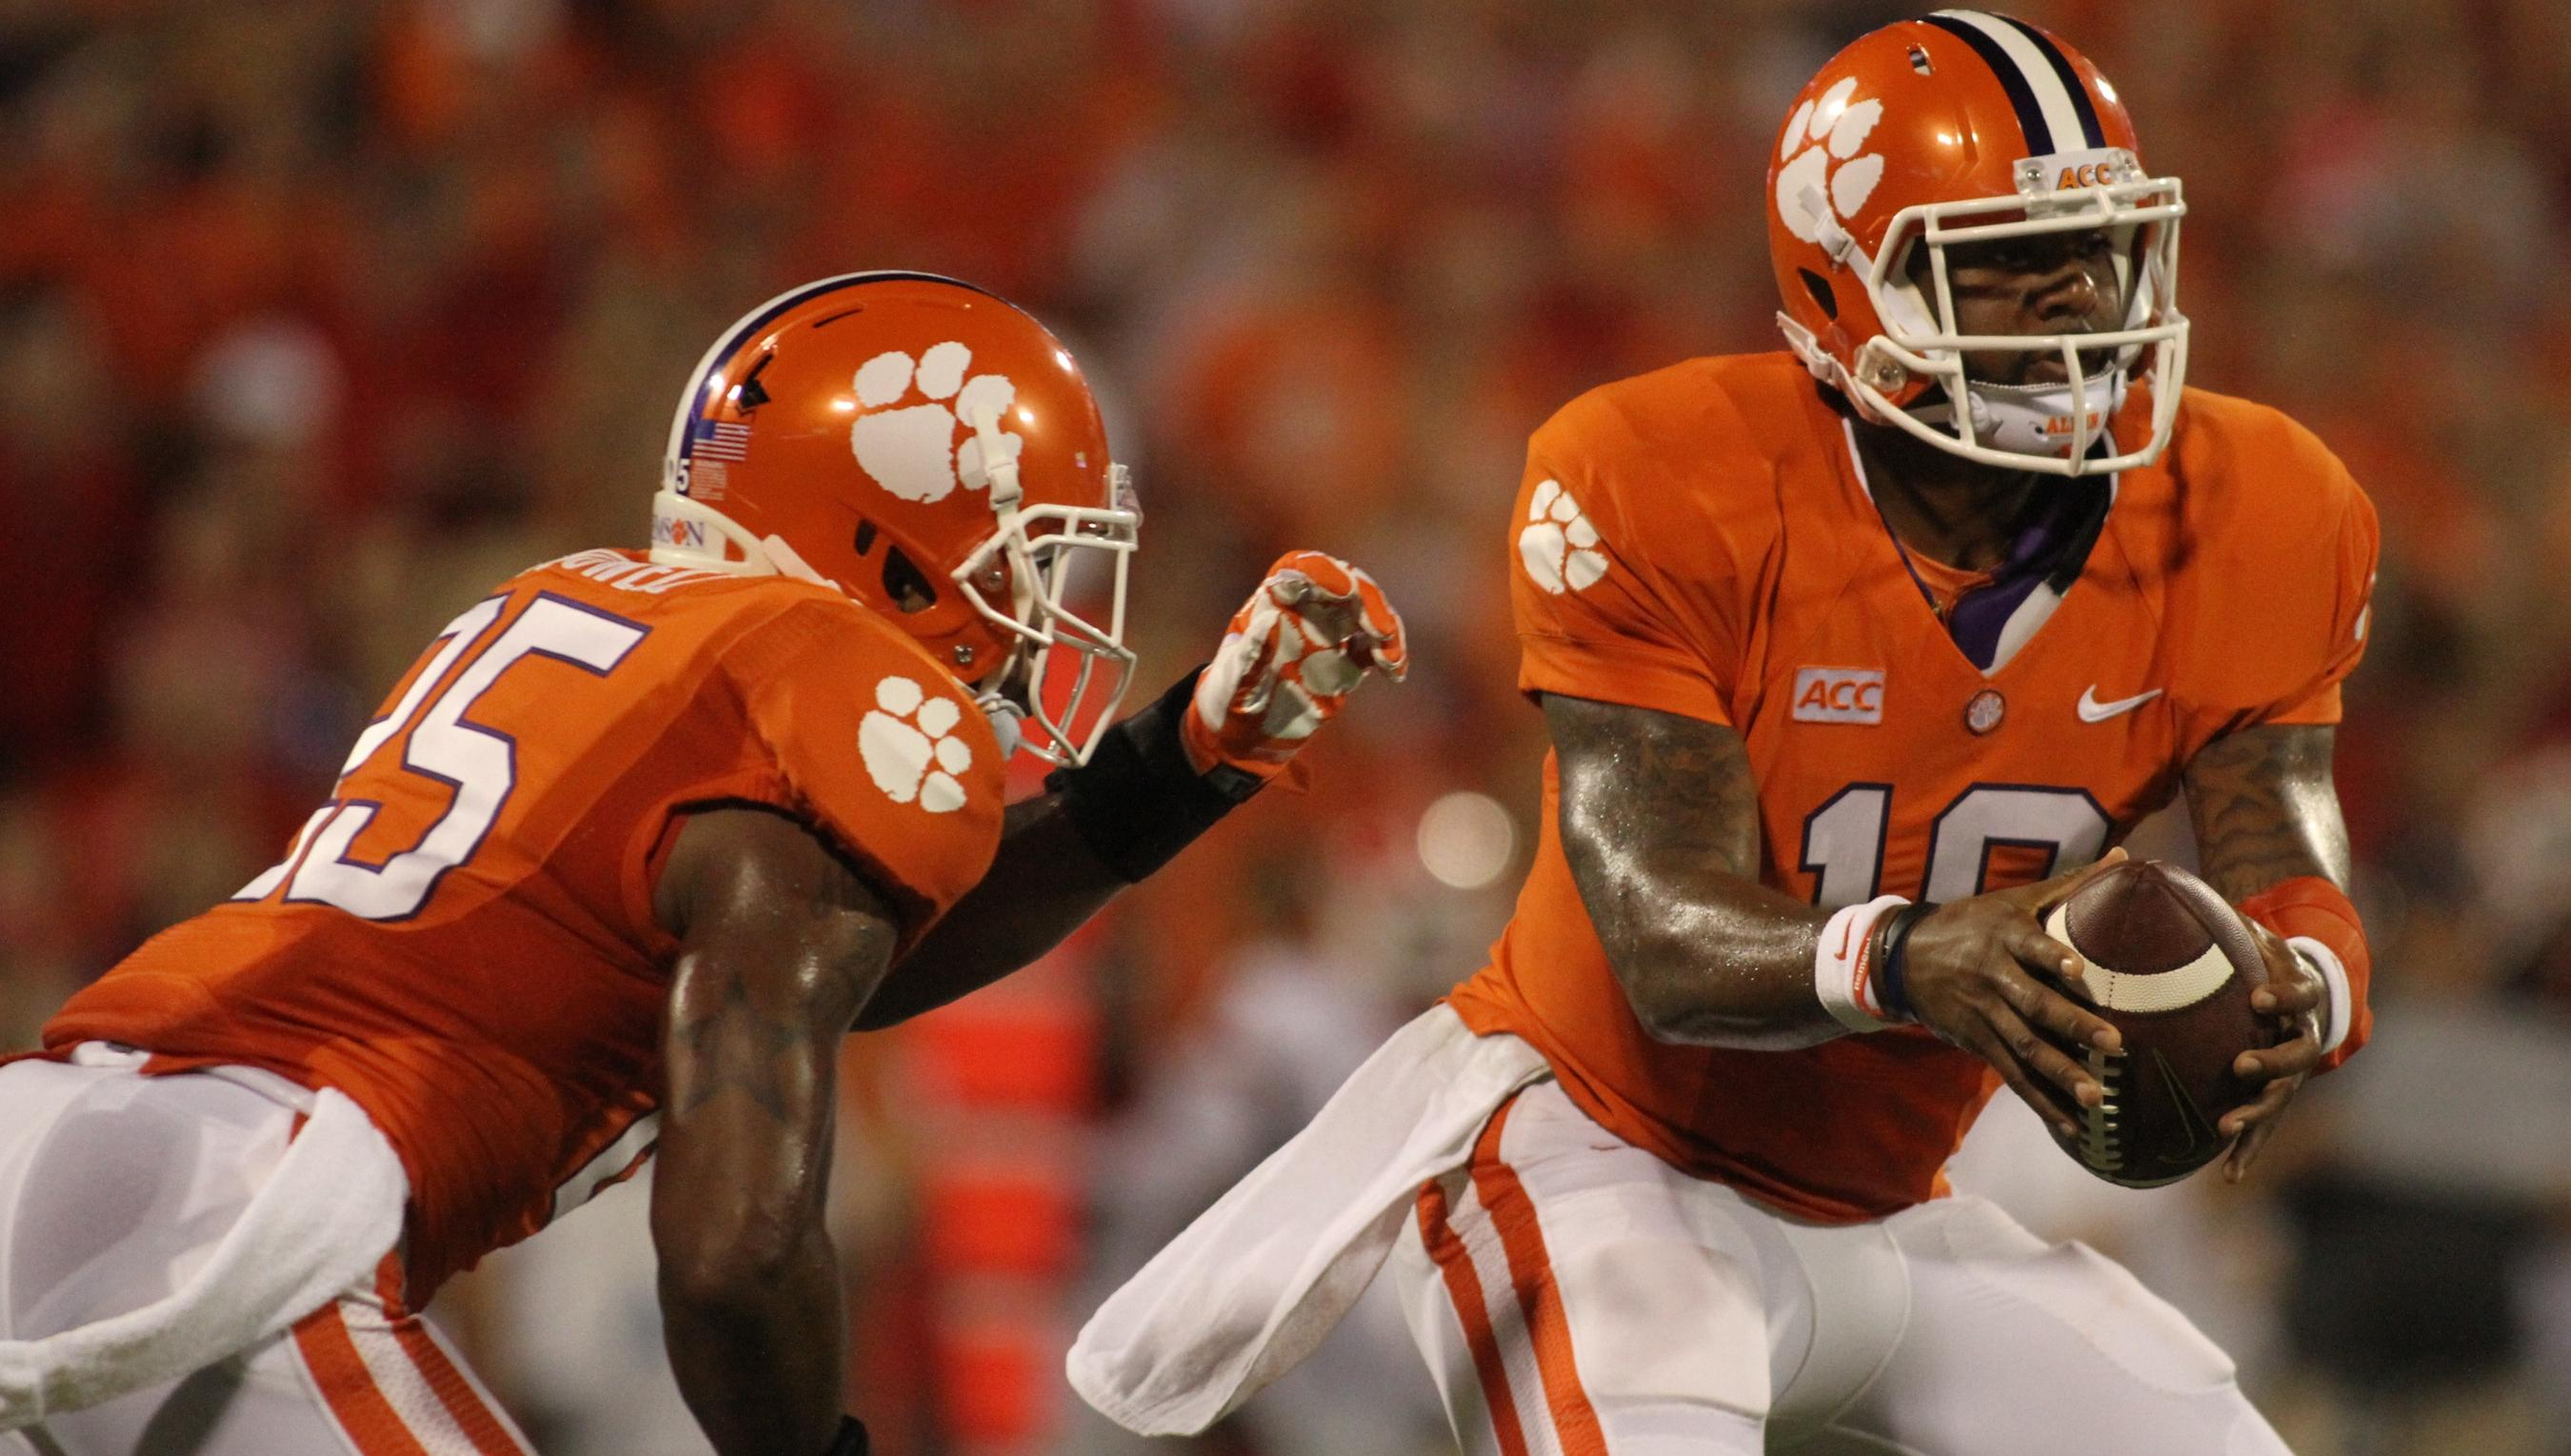 EXCLUSIVE: Swinney: Tigers Must Improve to have Special Season